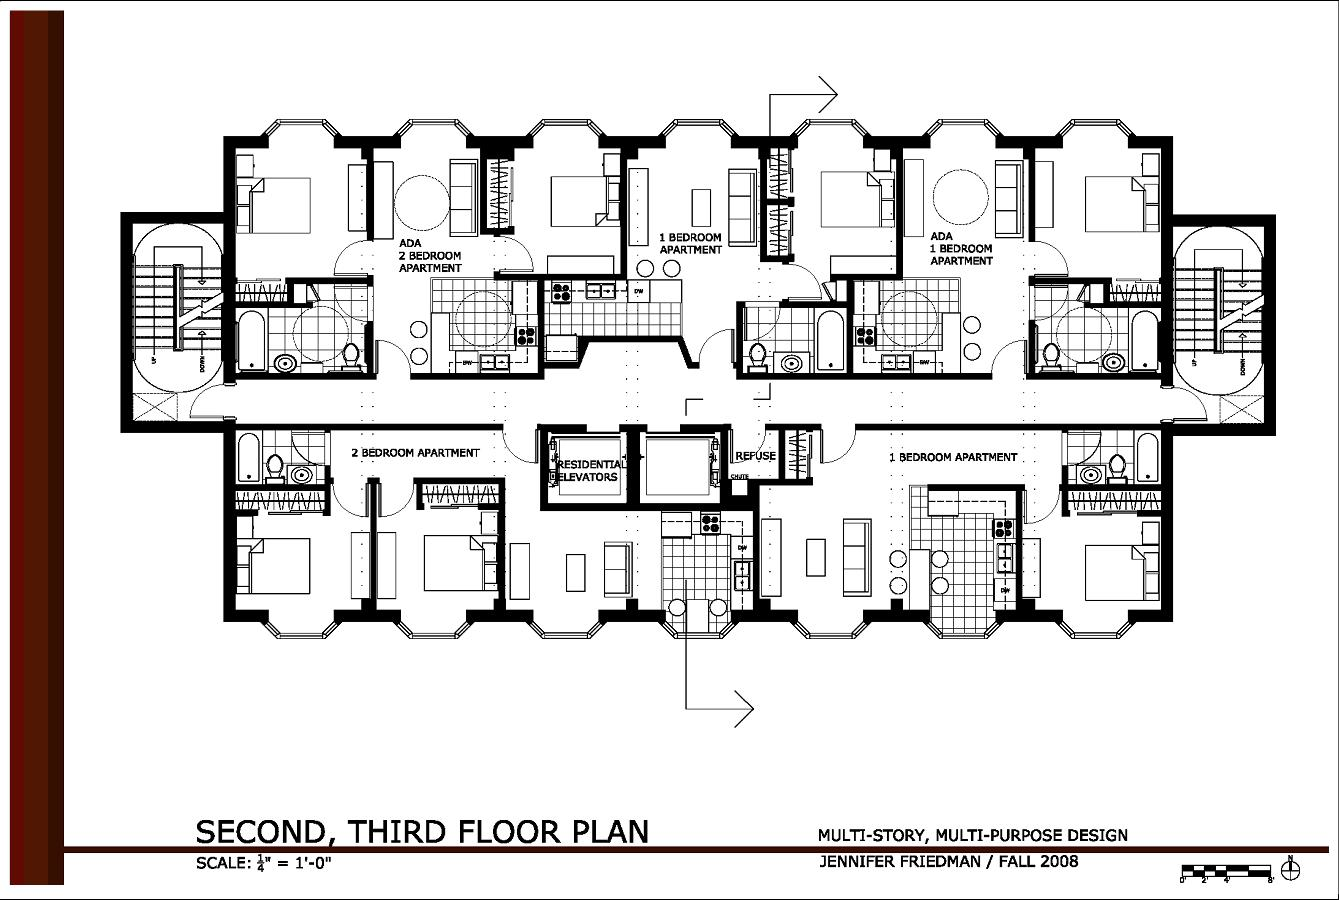 Multi story multi purpose design by jennifer friedman at for Commercial building plans